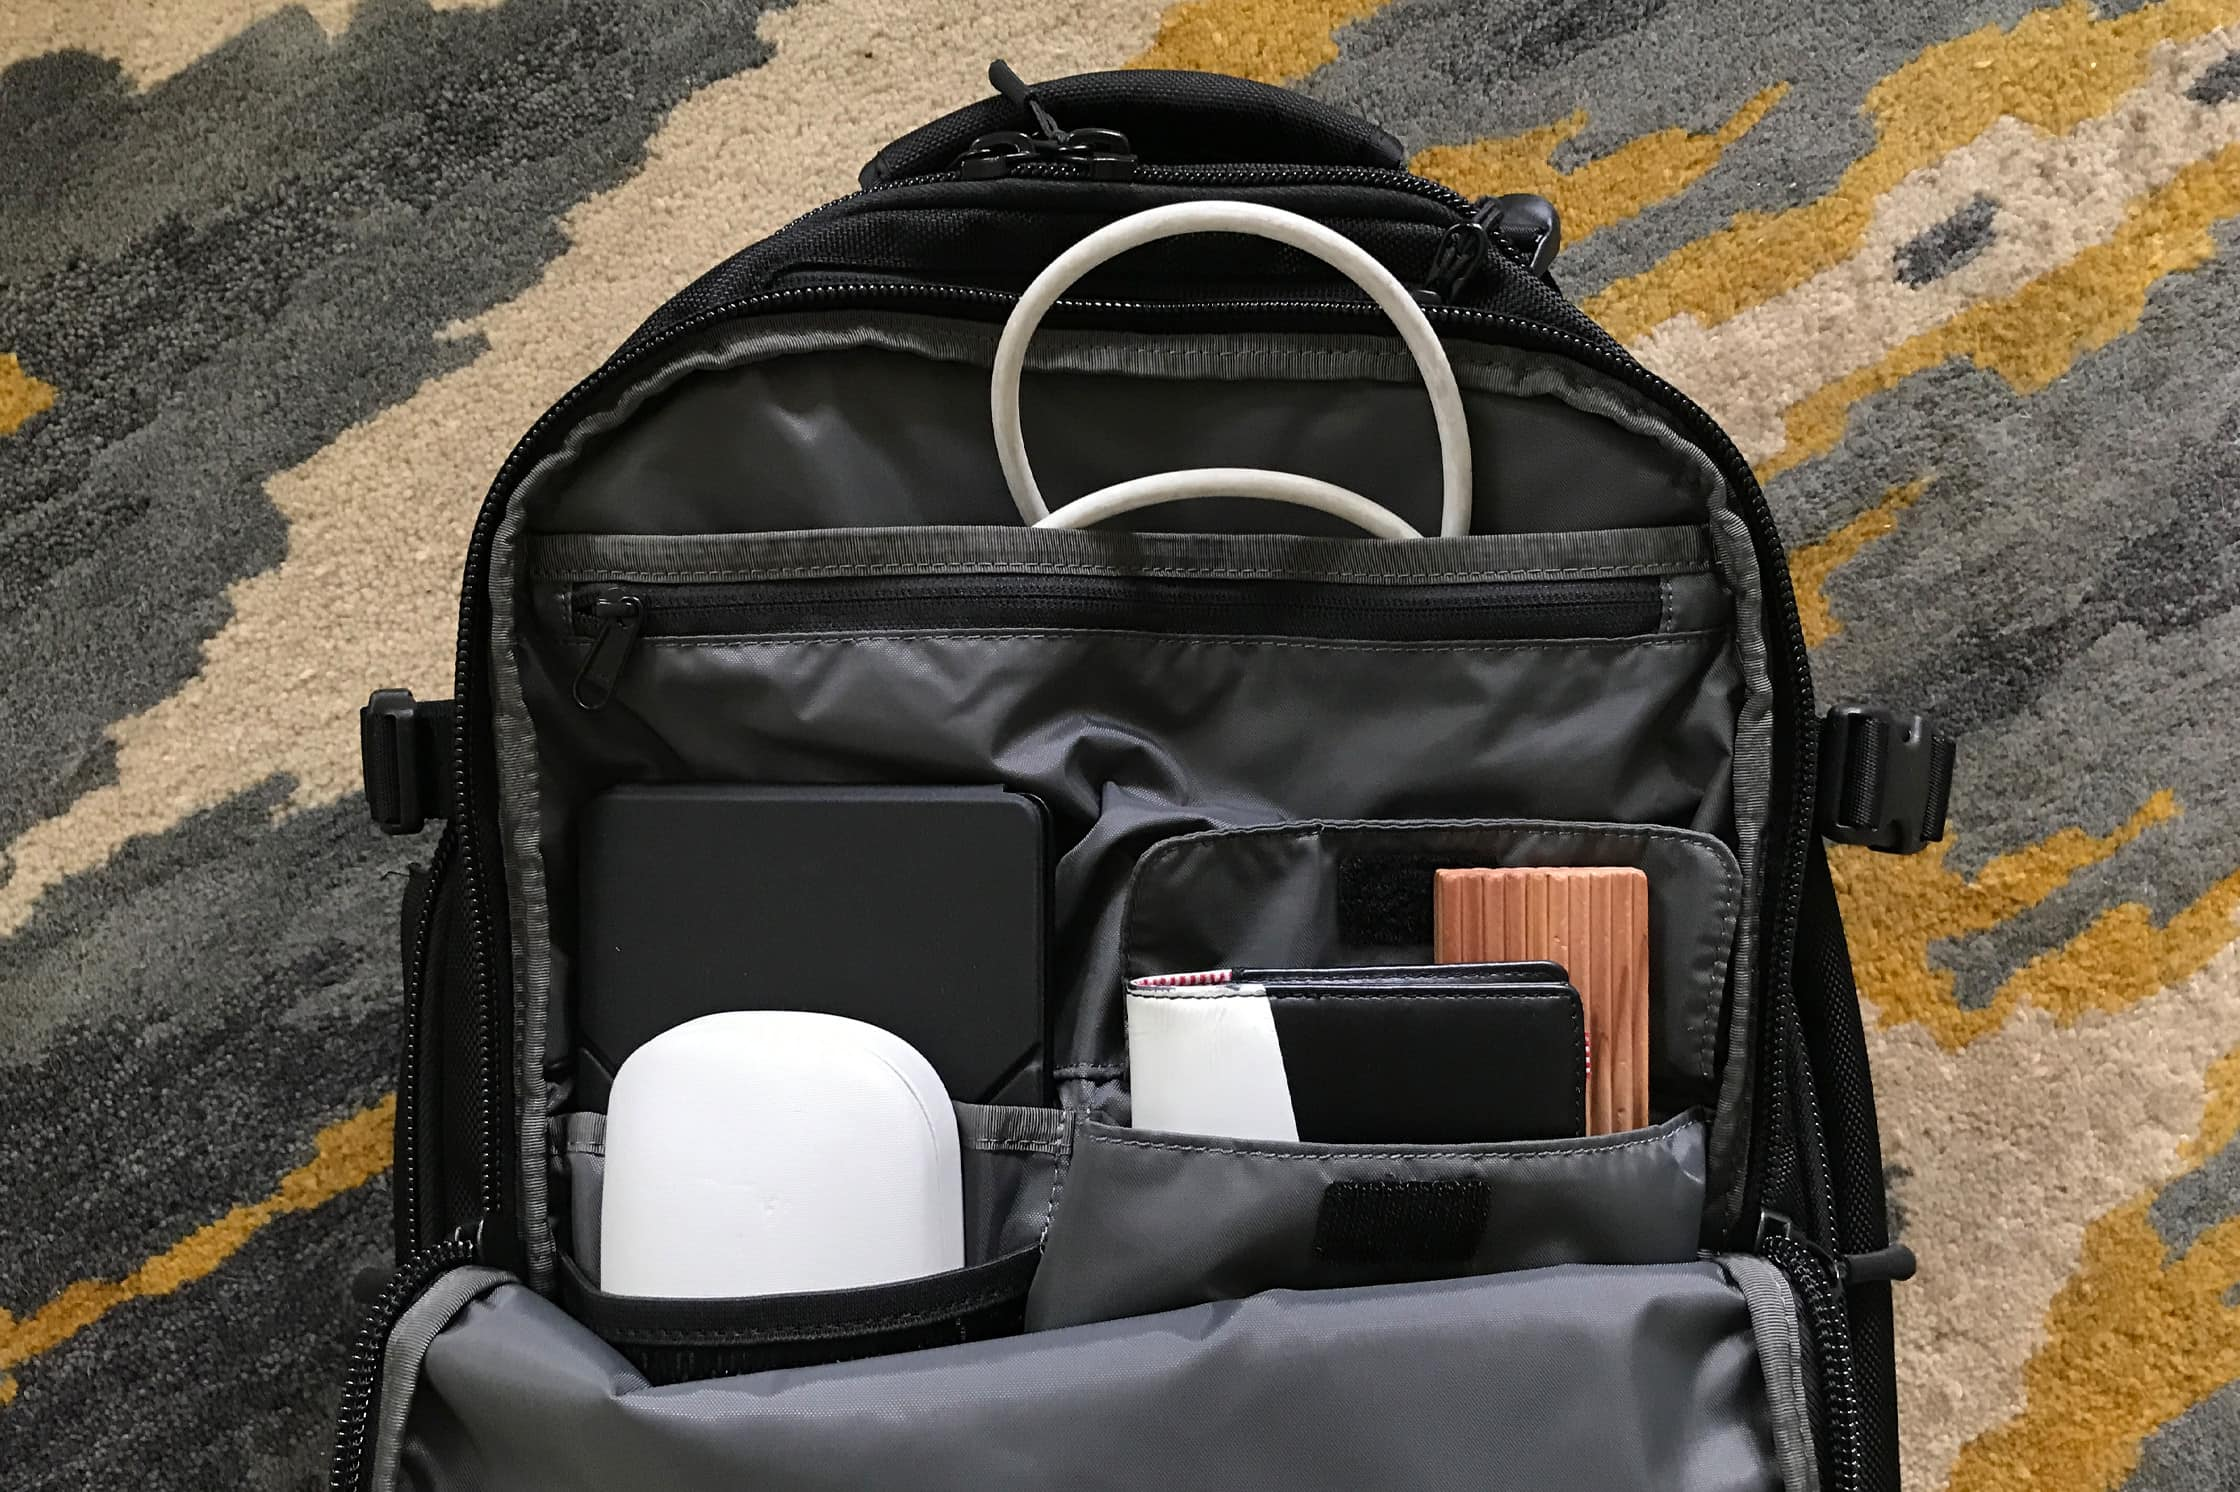 Aer Travel Pack Front Pocket